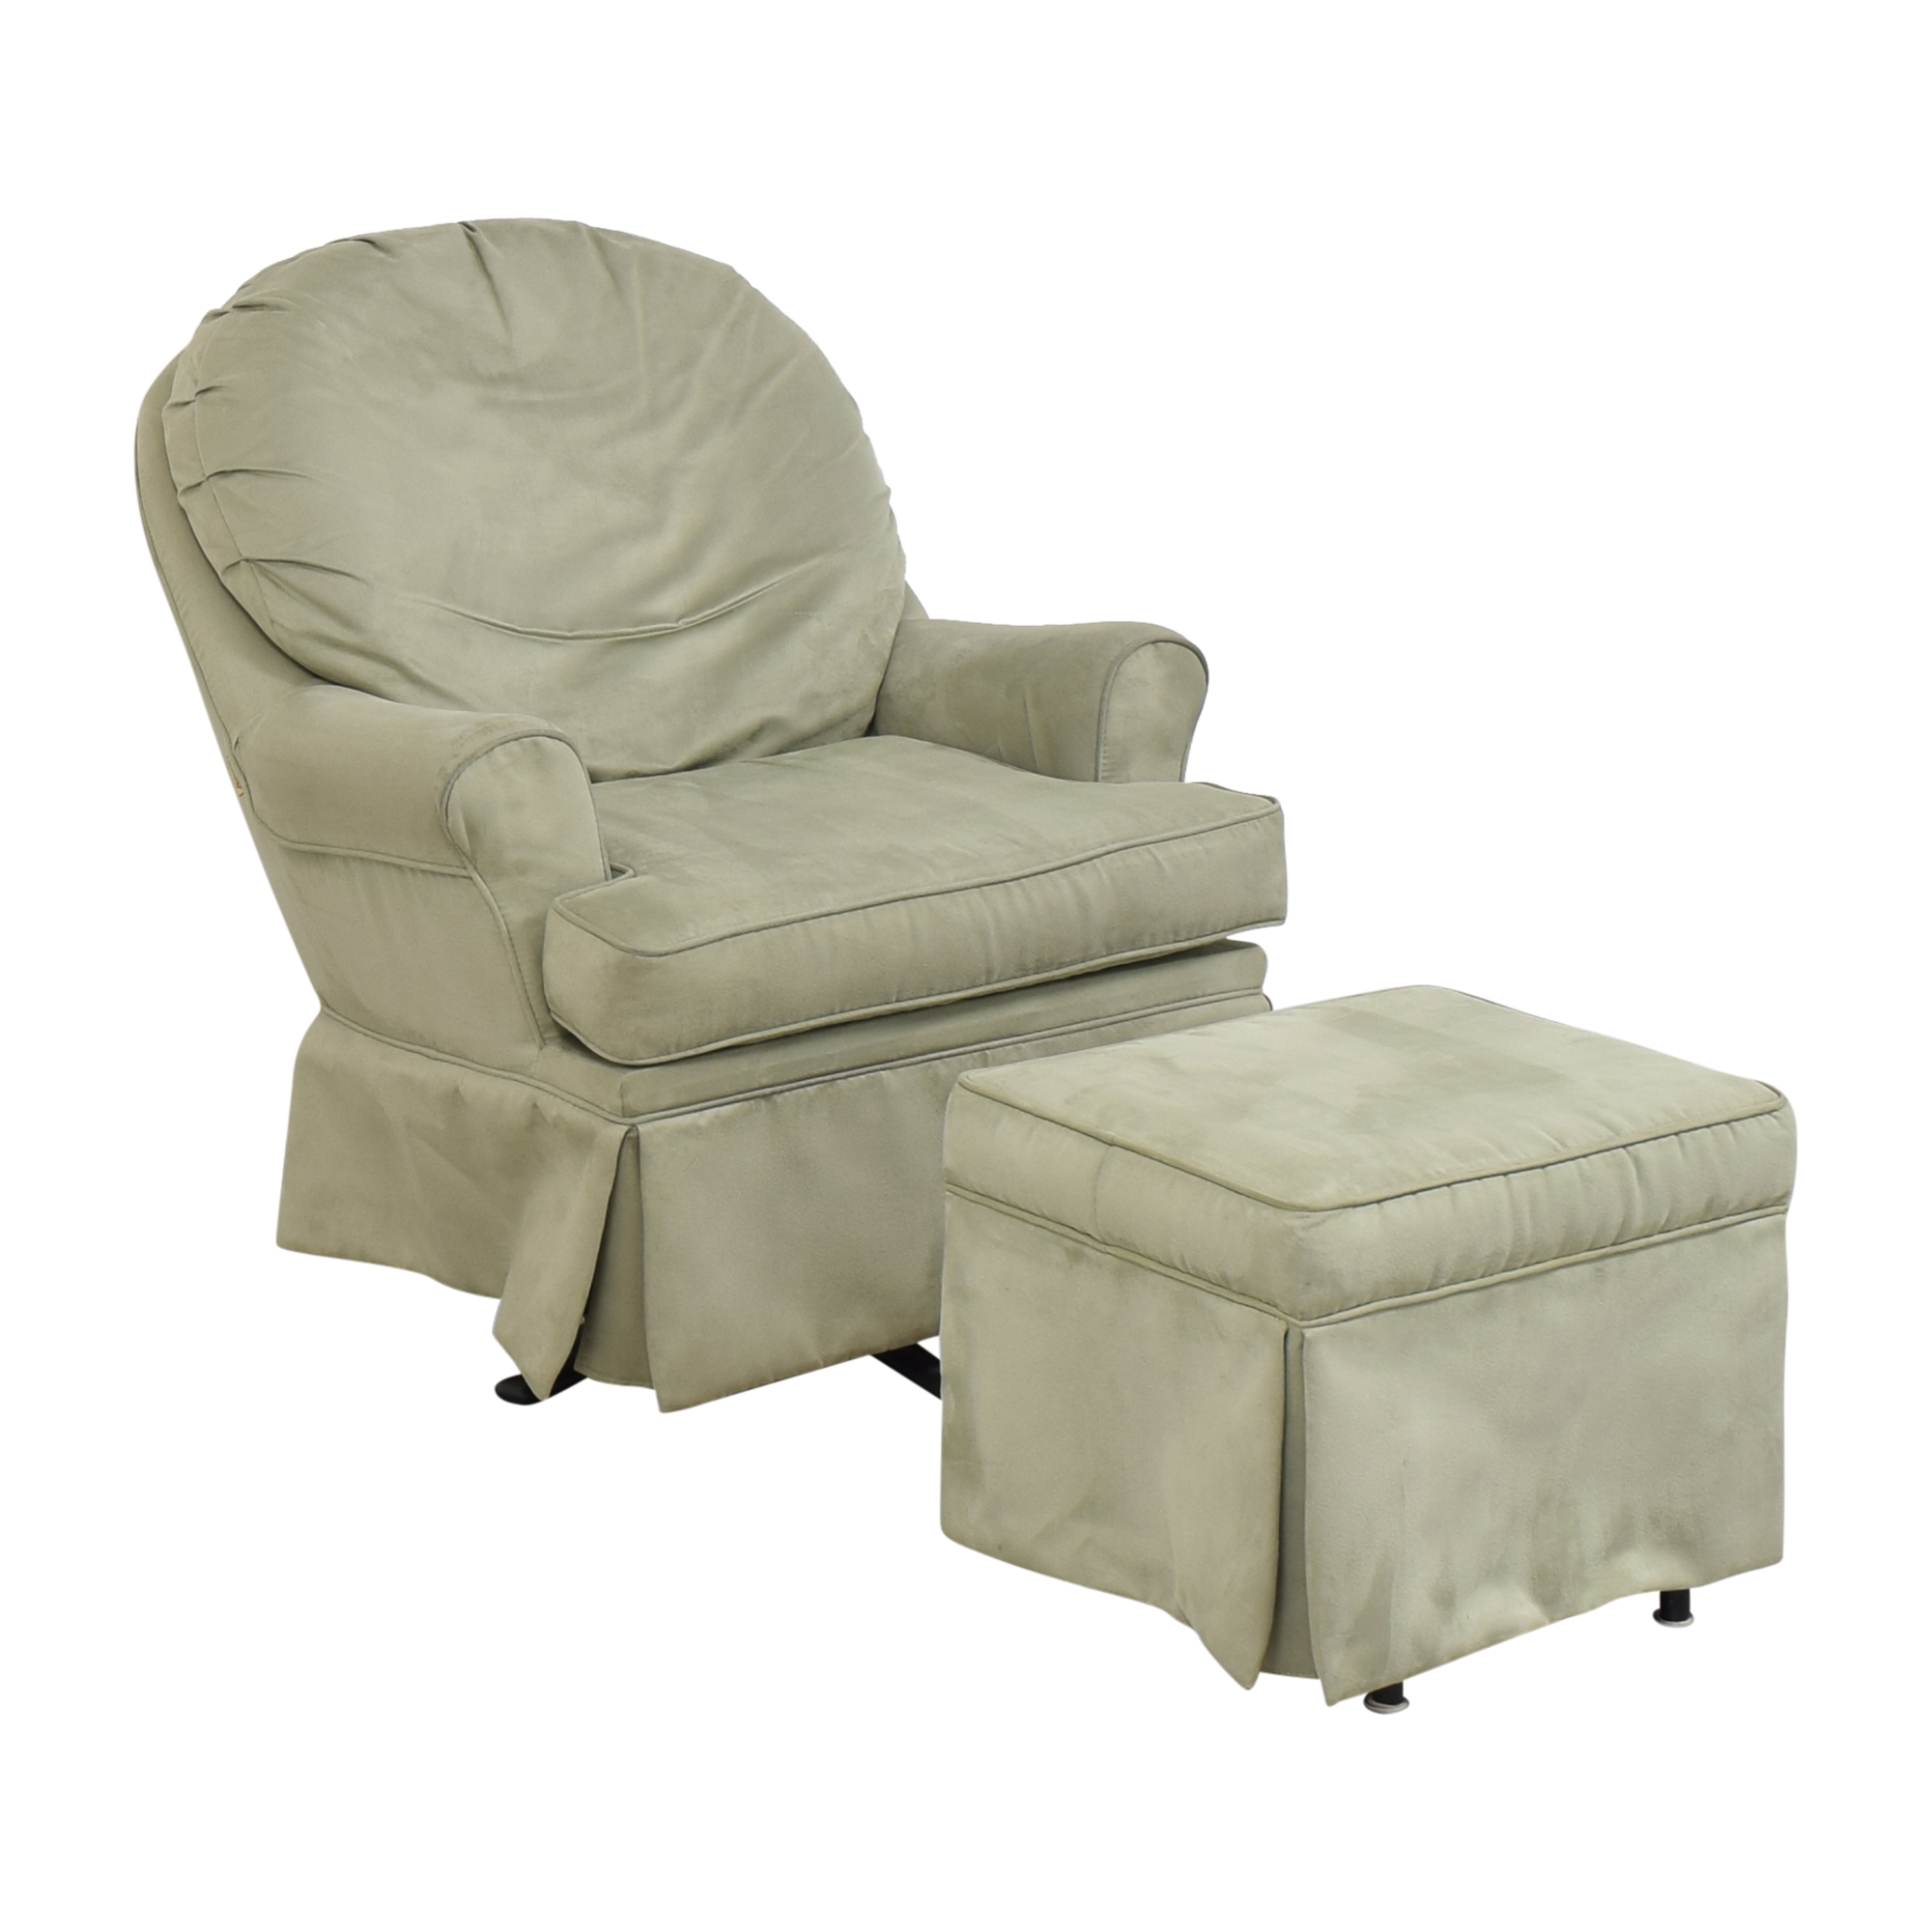 shop Dutailier Upholstered Glider with Ottoman Dutailier Chairs